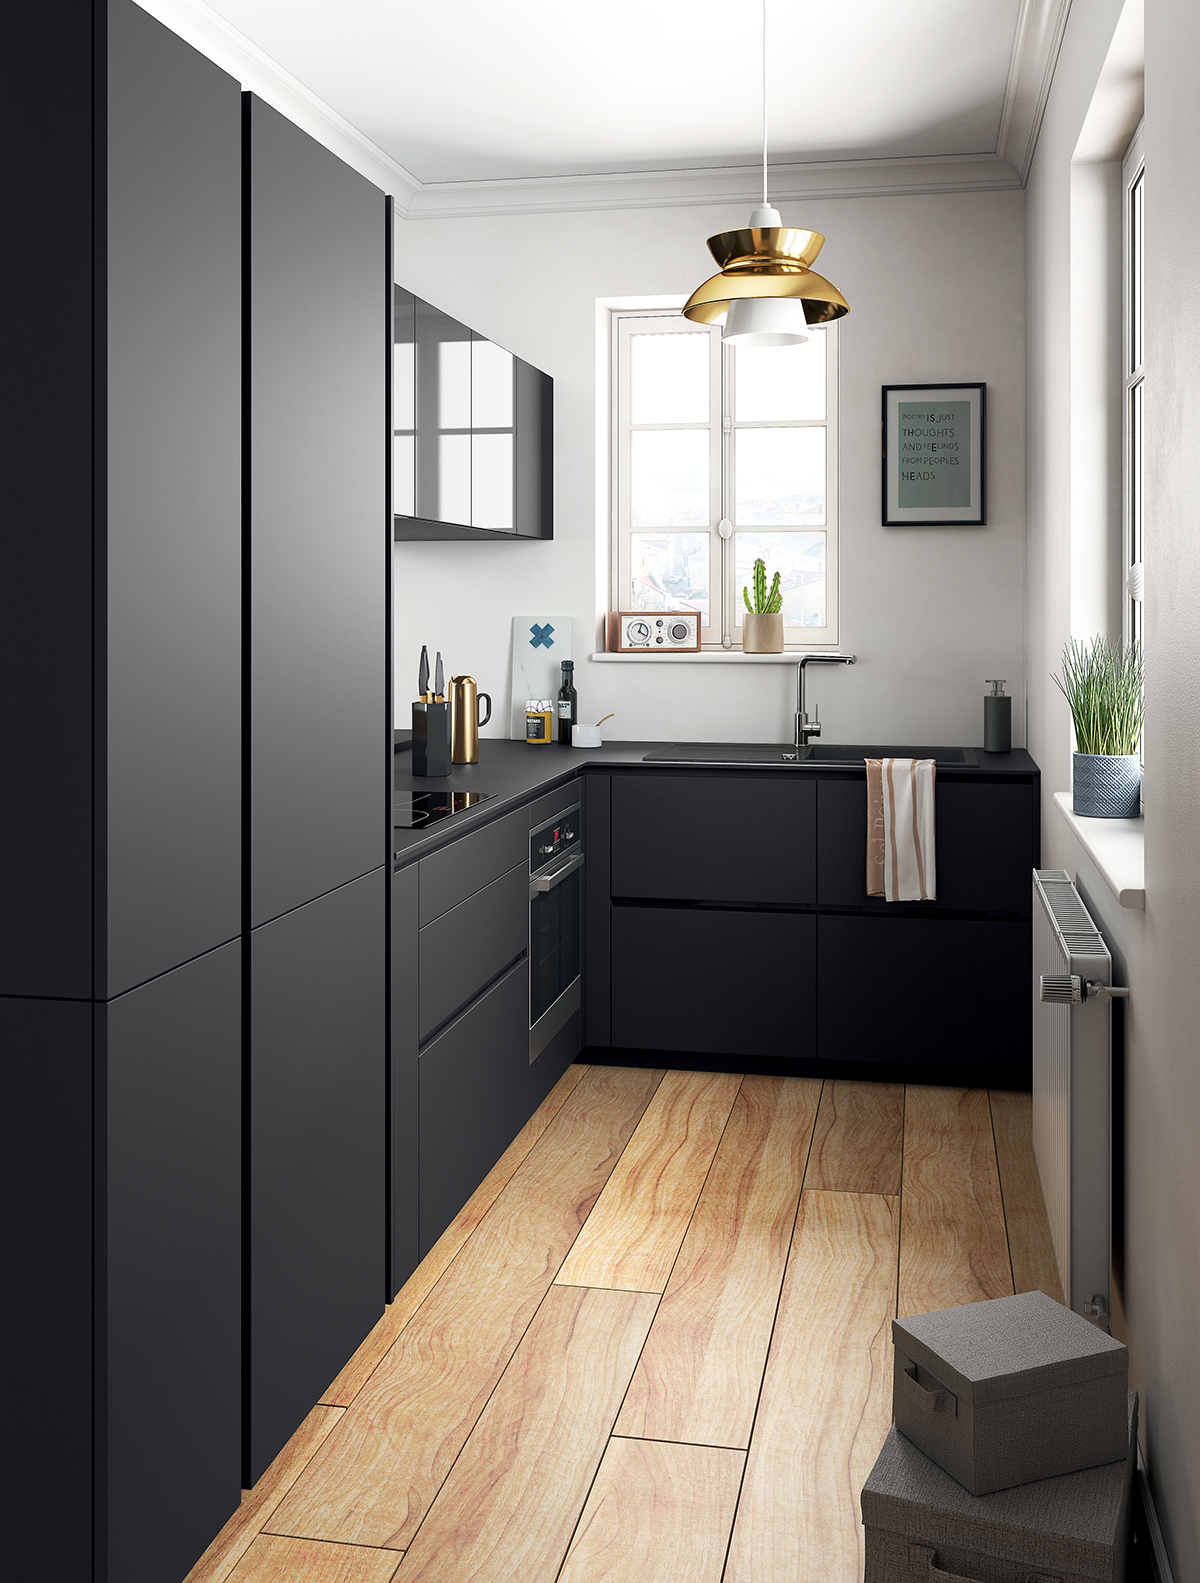 2018 Interior Trends Matte Black Finishes Kitchen Black